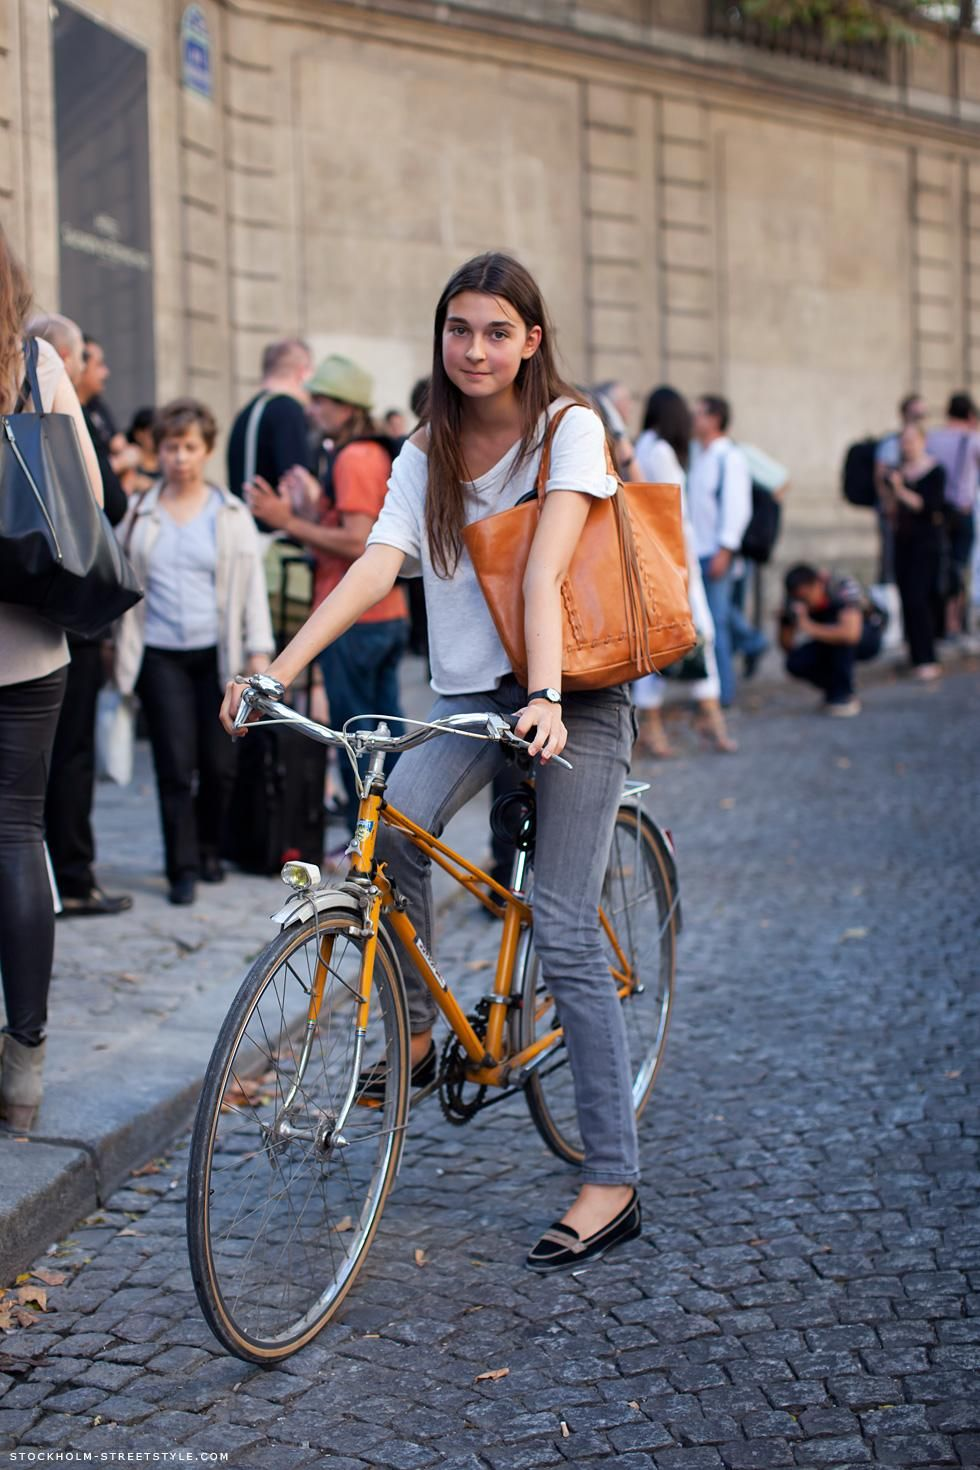 39 Fashion Girl-Approved Ways to Look Stylish WhileBiking 39 Fashion Girl-Approved Ways to Look Stylish WhileBiking new foto